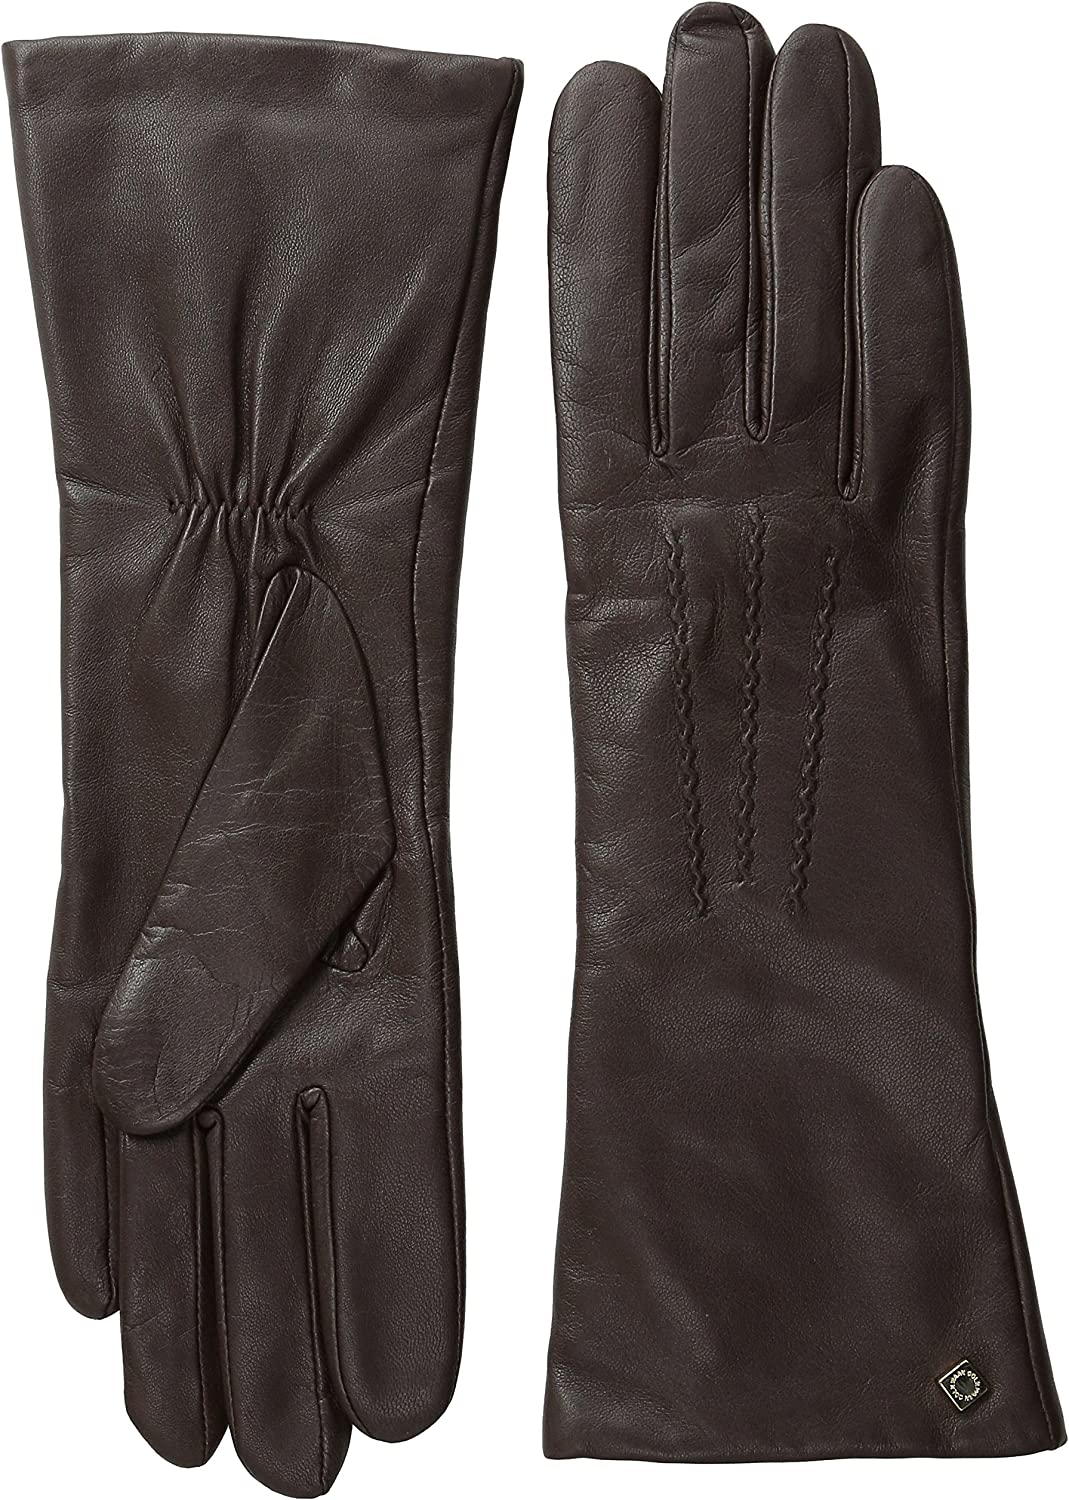 Cole Haan Women's Long Leather Gloves